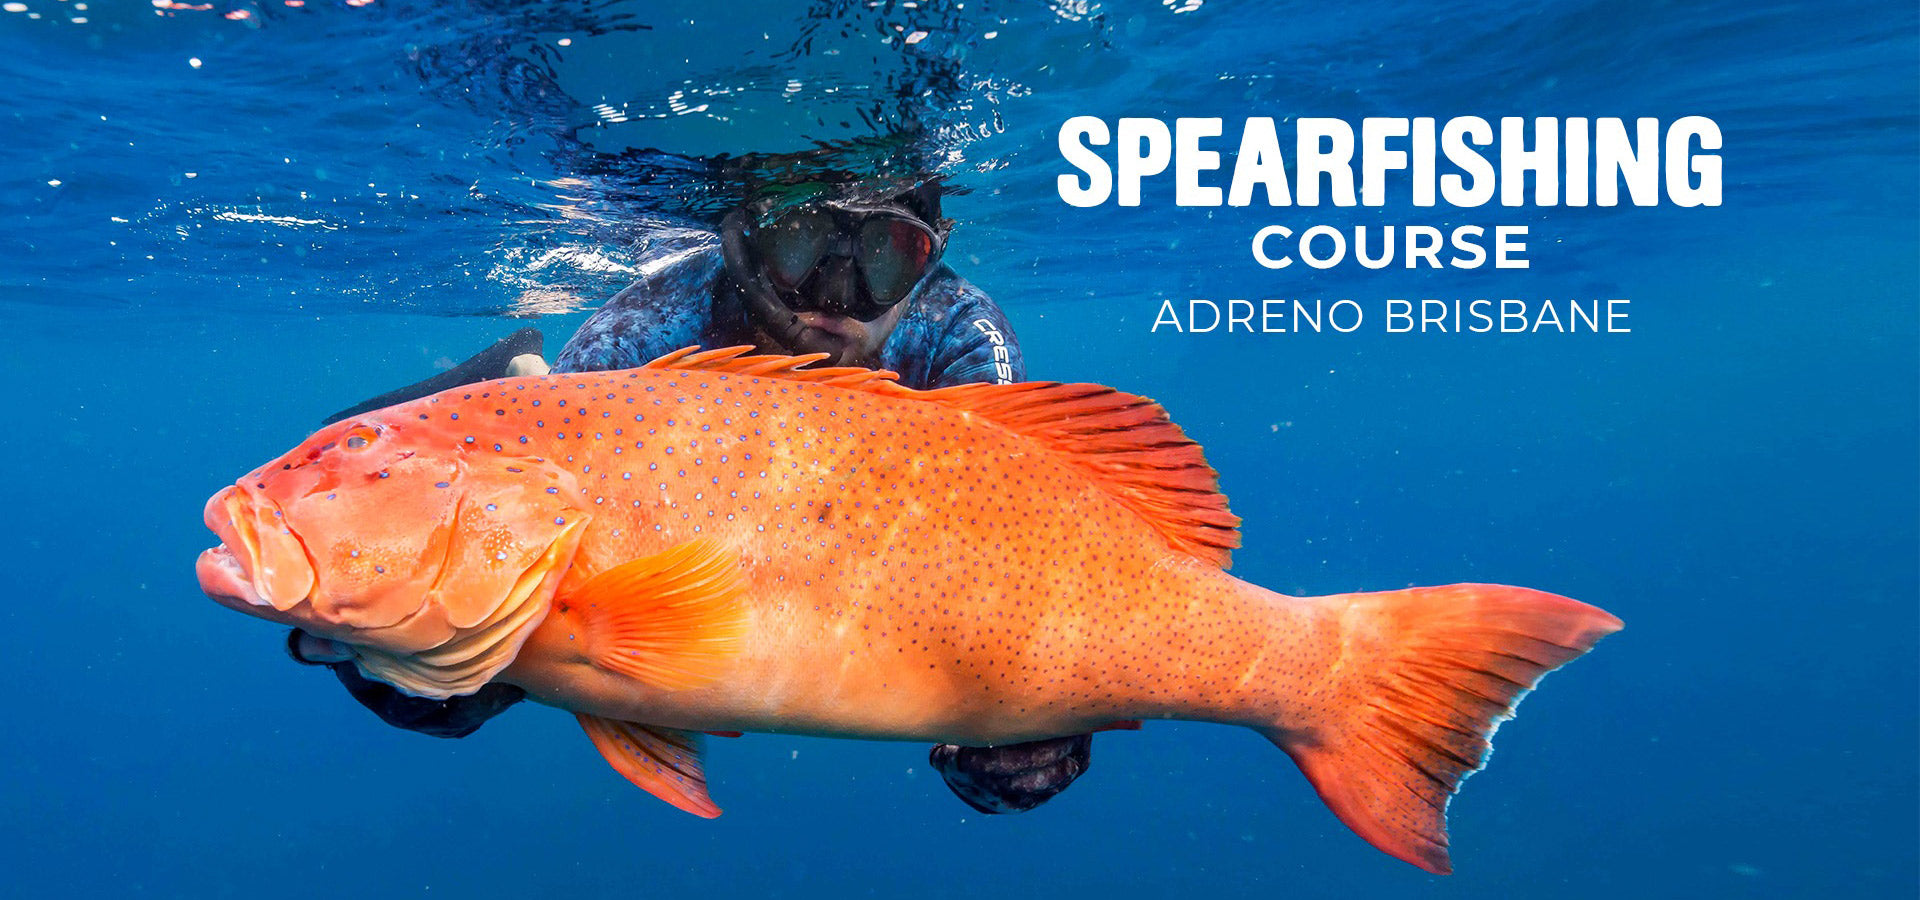 Brisbane Spearfishing Course